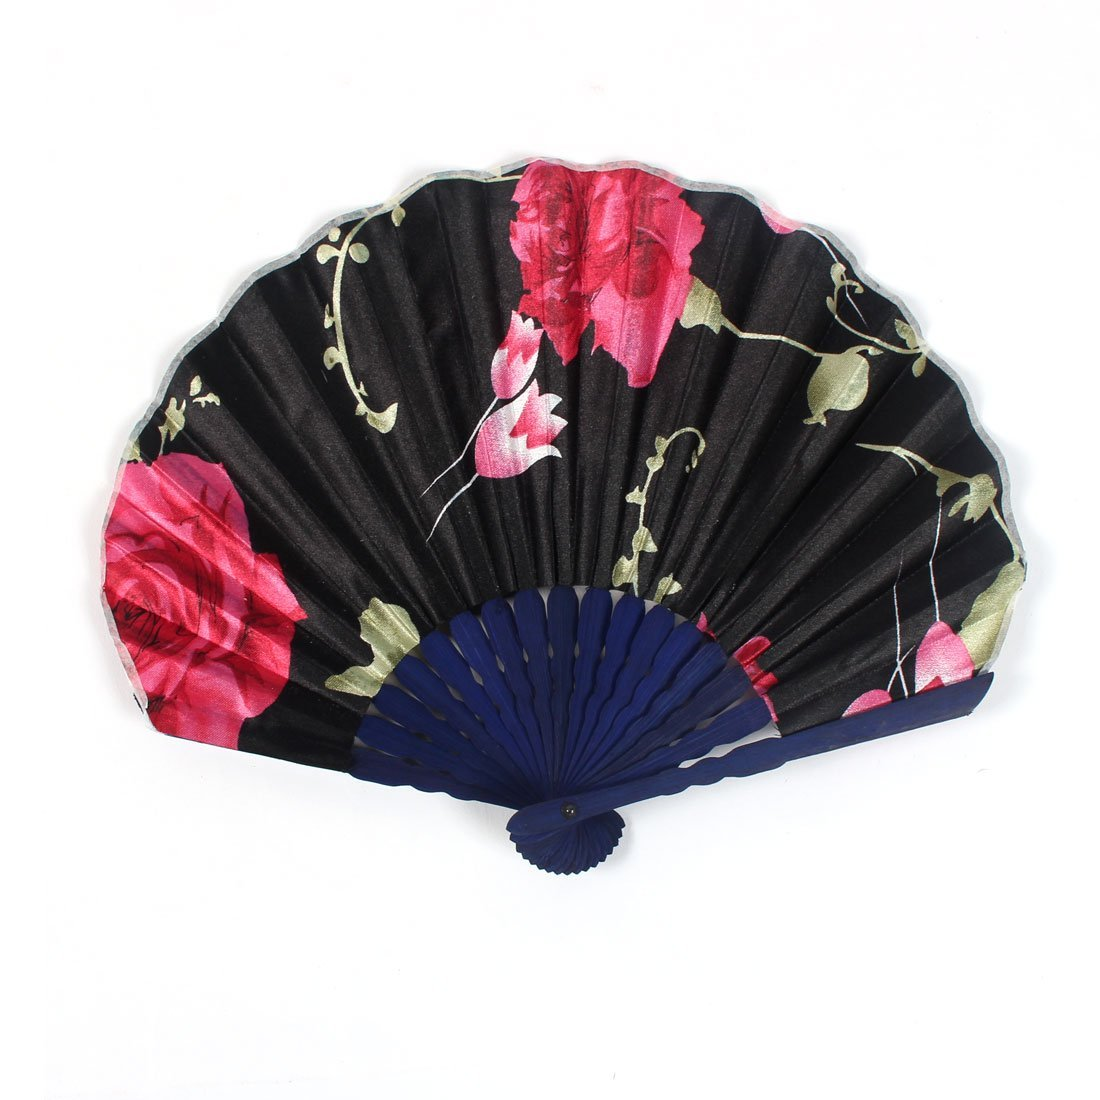 uxcell Rose Blossom Printed Ladies Summer Hand-held Folding Dancing Hand Fan Craft